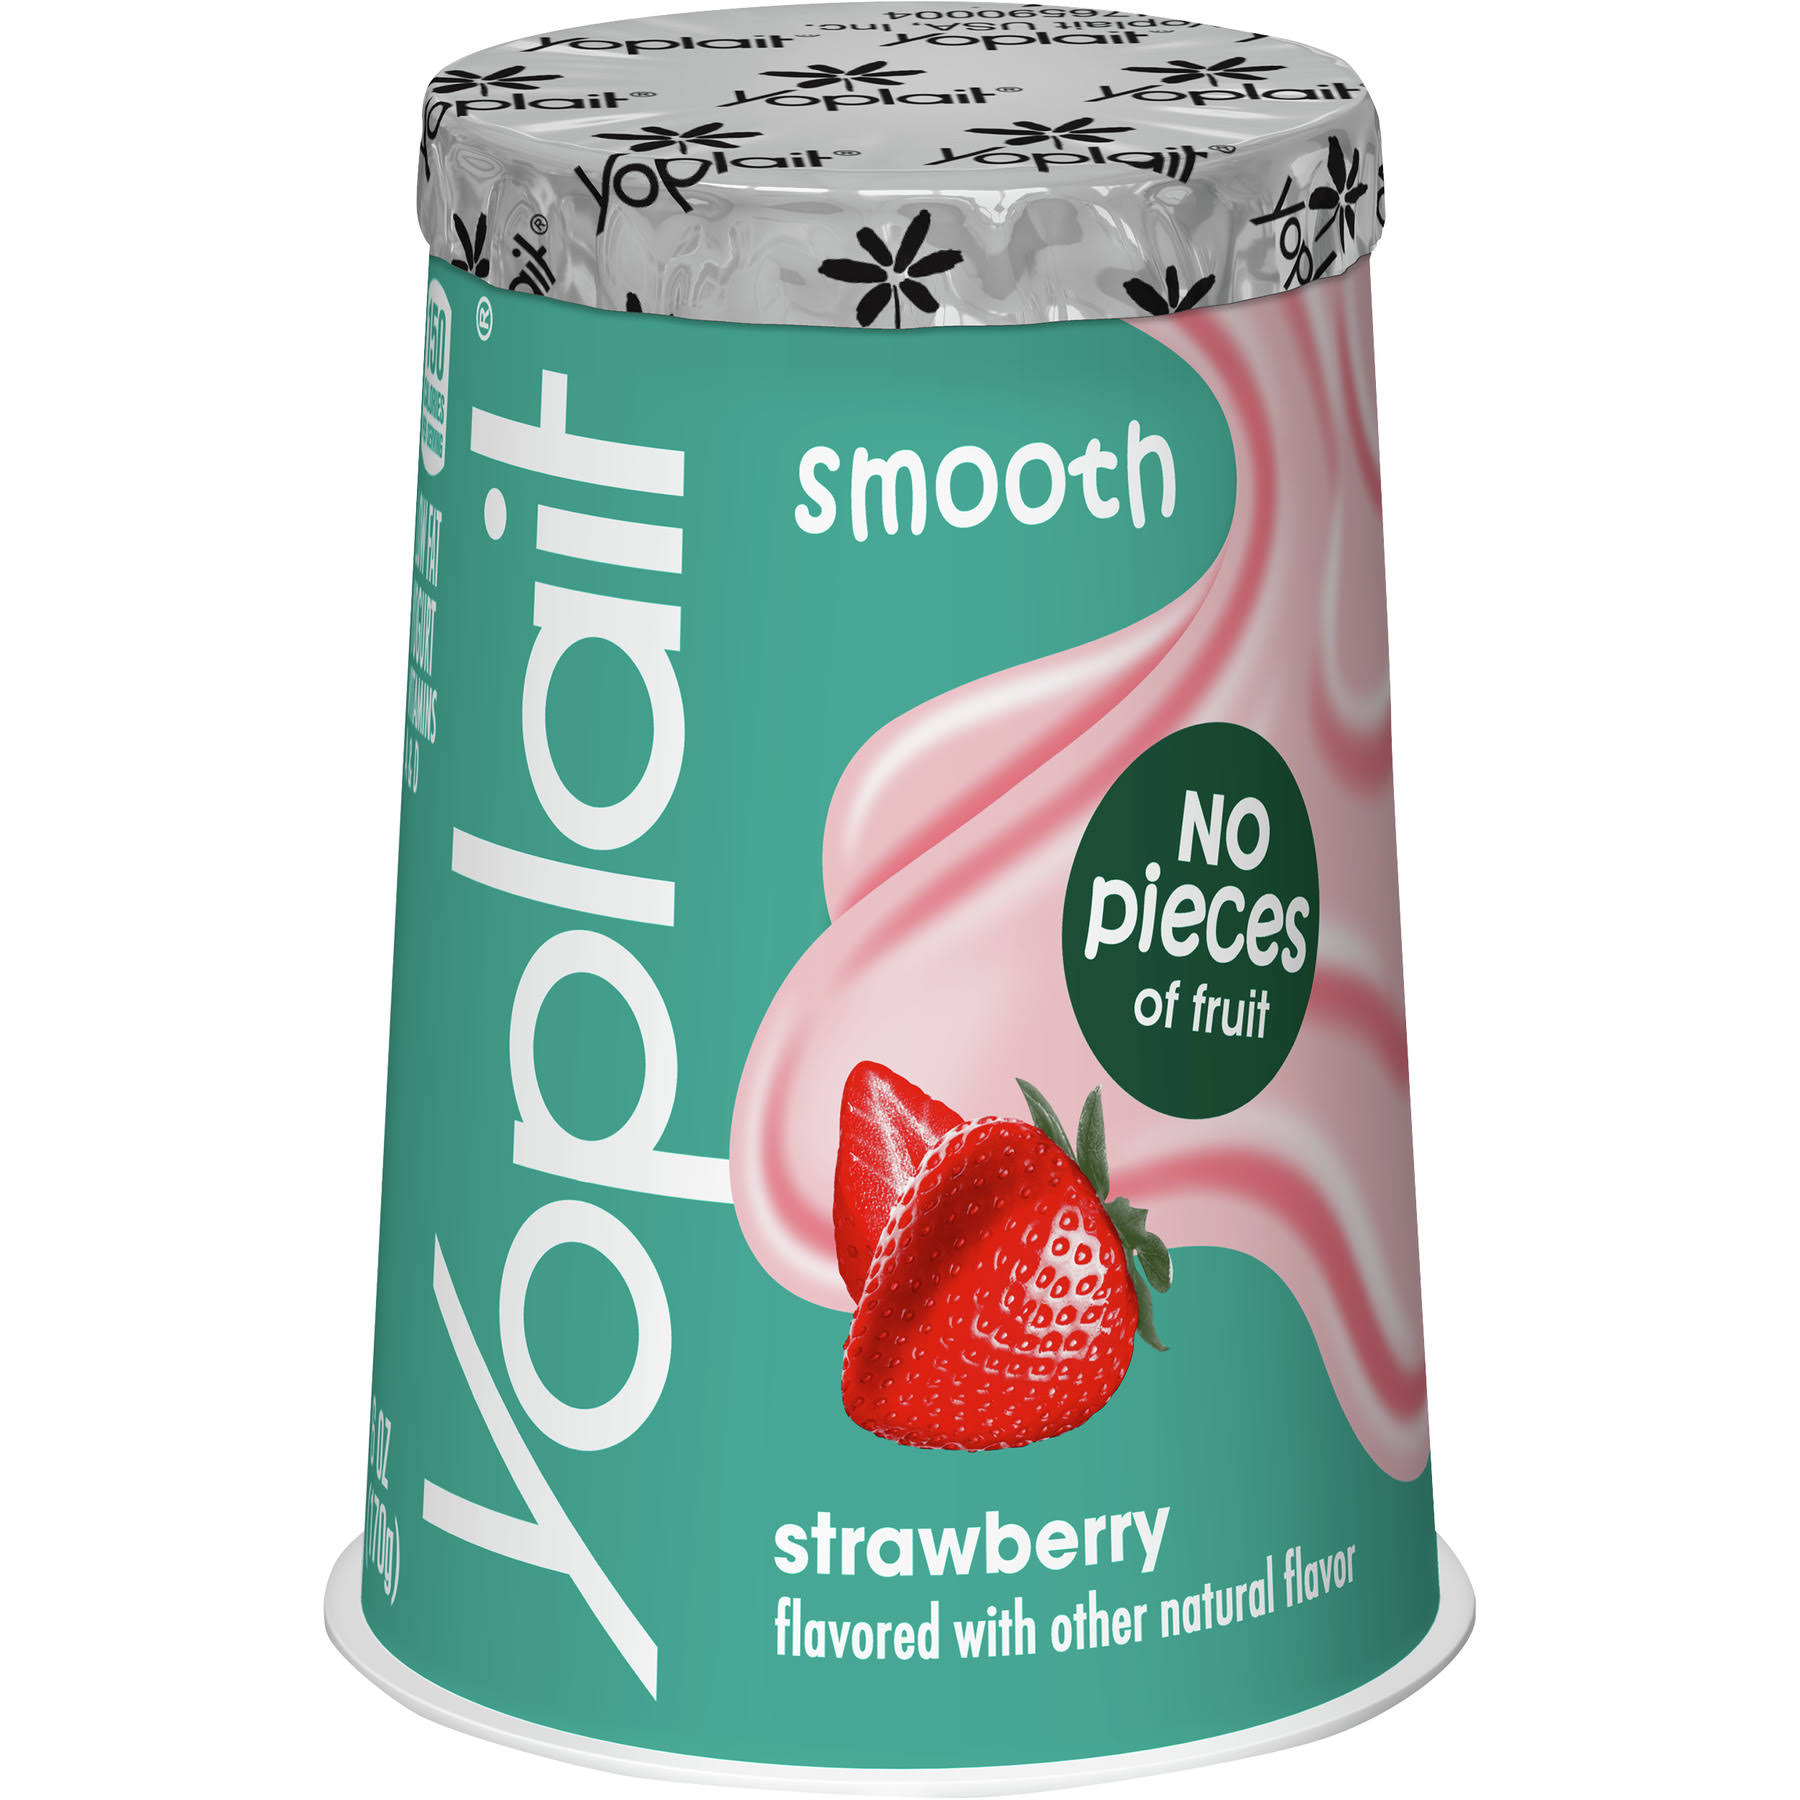 Yoplait Original Lowfat Yogurt No Fruit Pieces Strawberry Single Serve